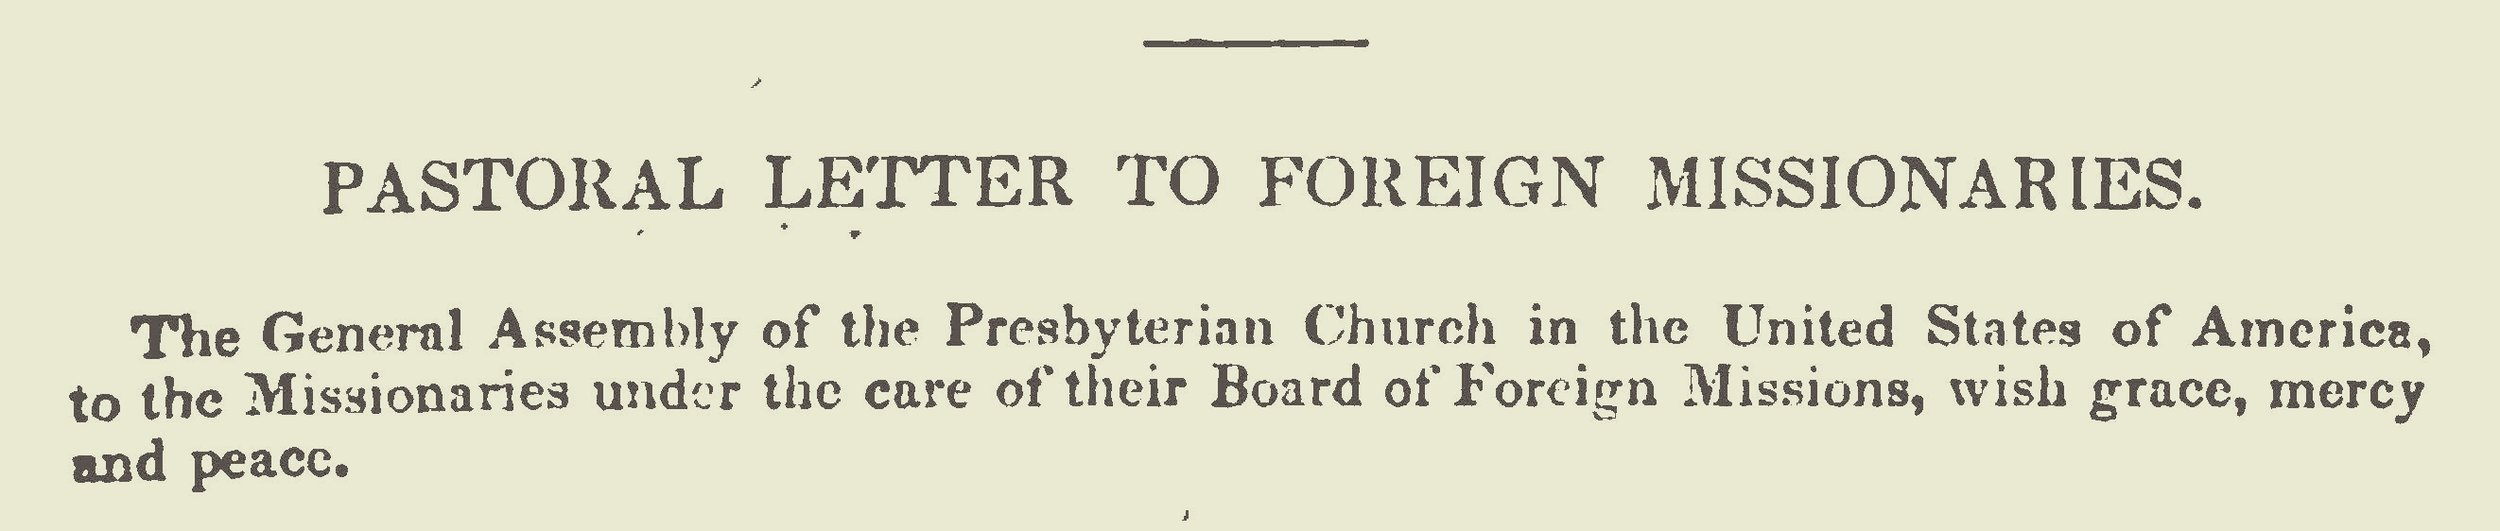 Plumer, William Swan, Pastoral Letter to Foreign Missionaries of the 1838 PCUSA General Assembly Title Page.jpg